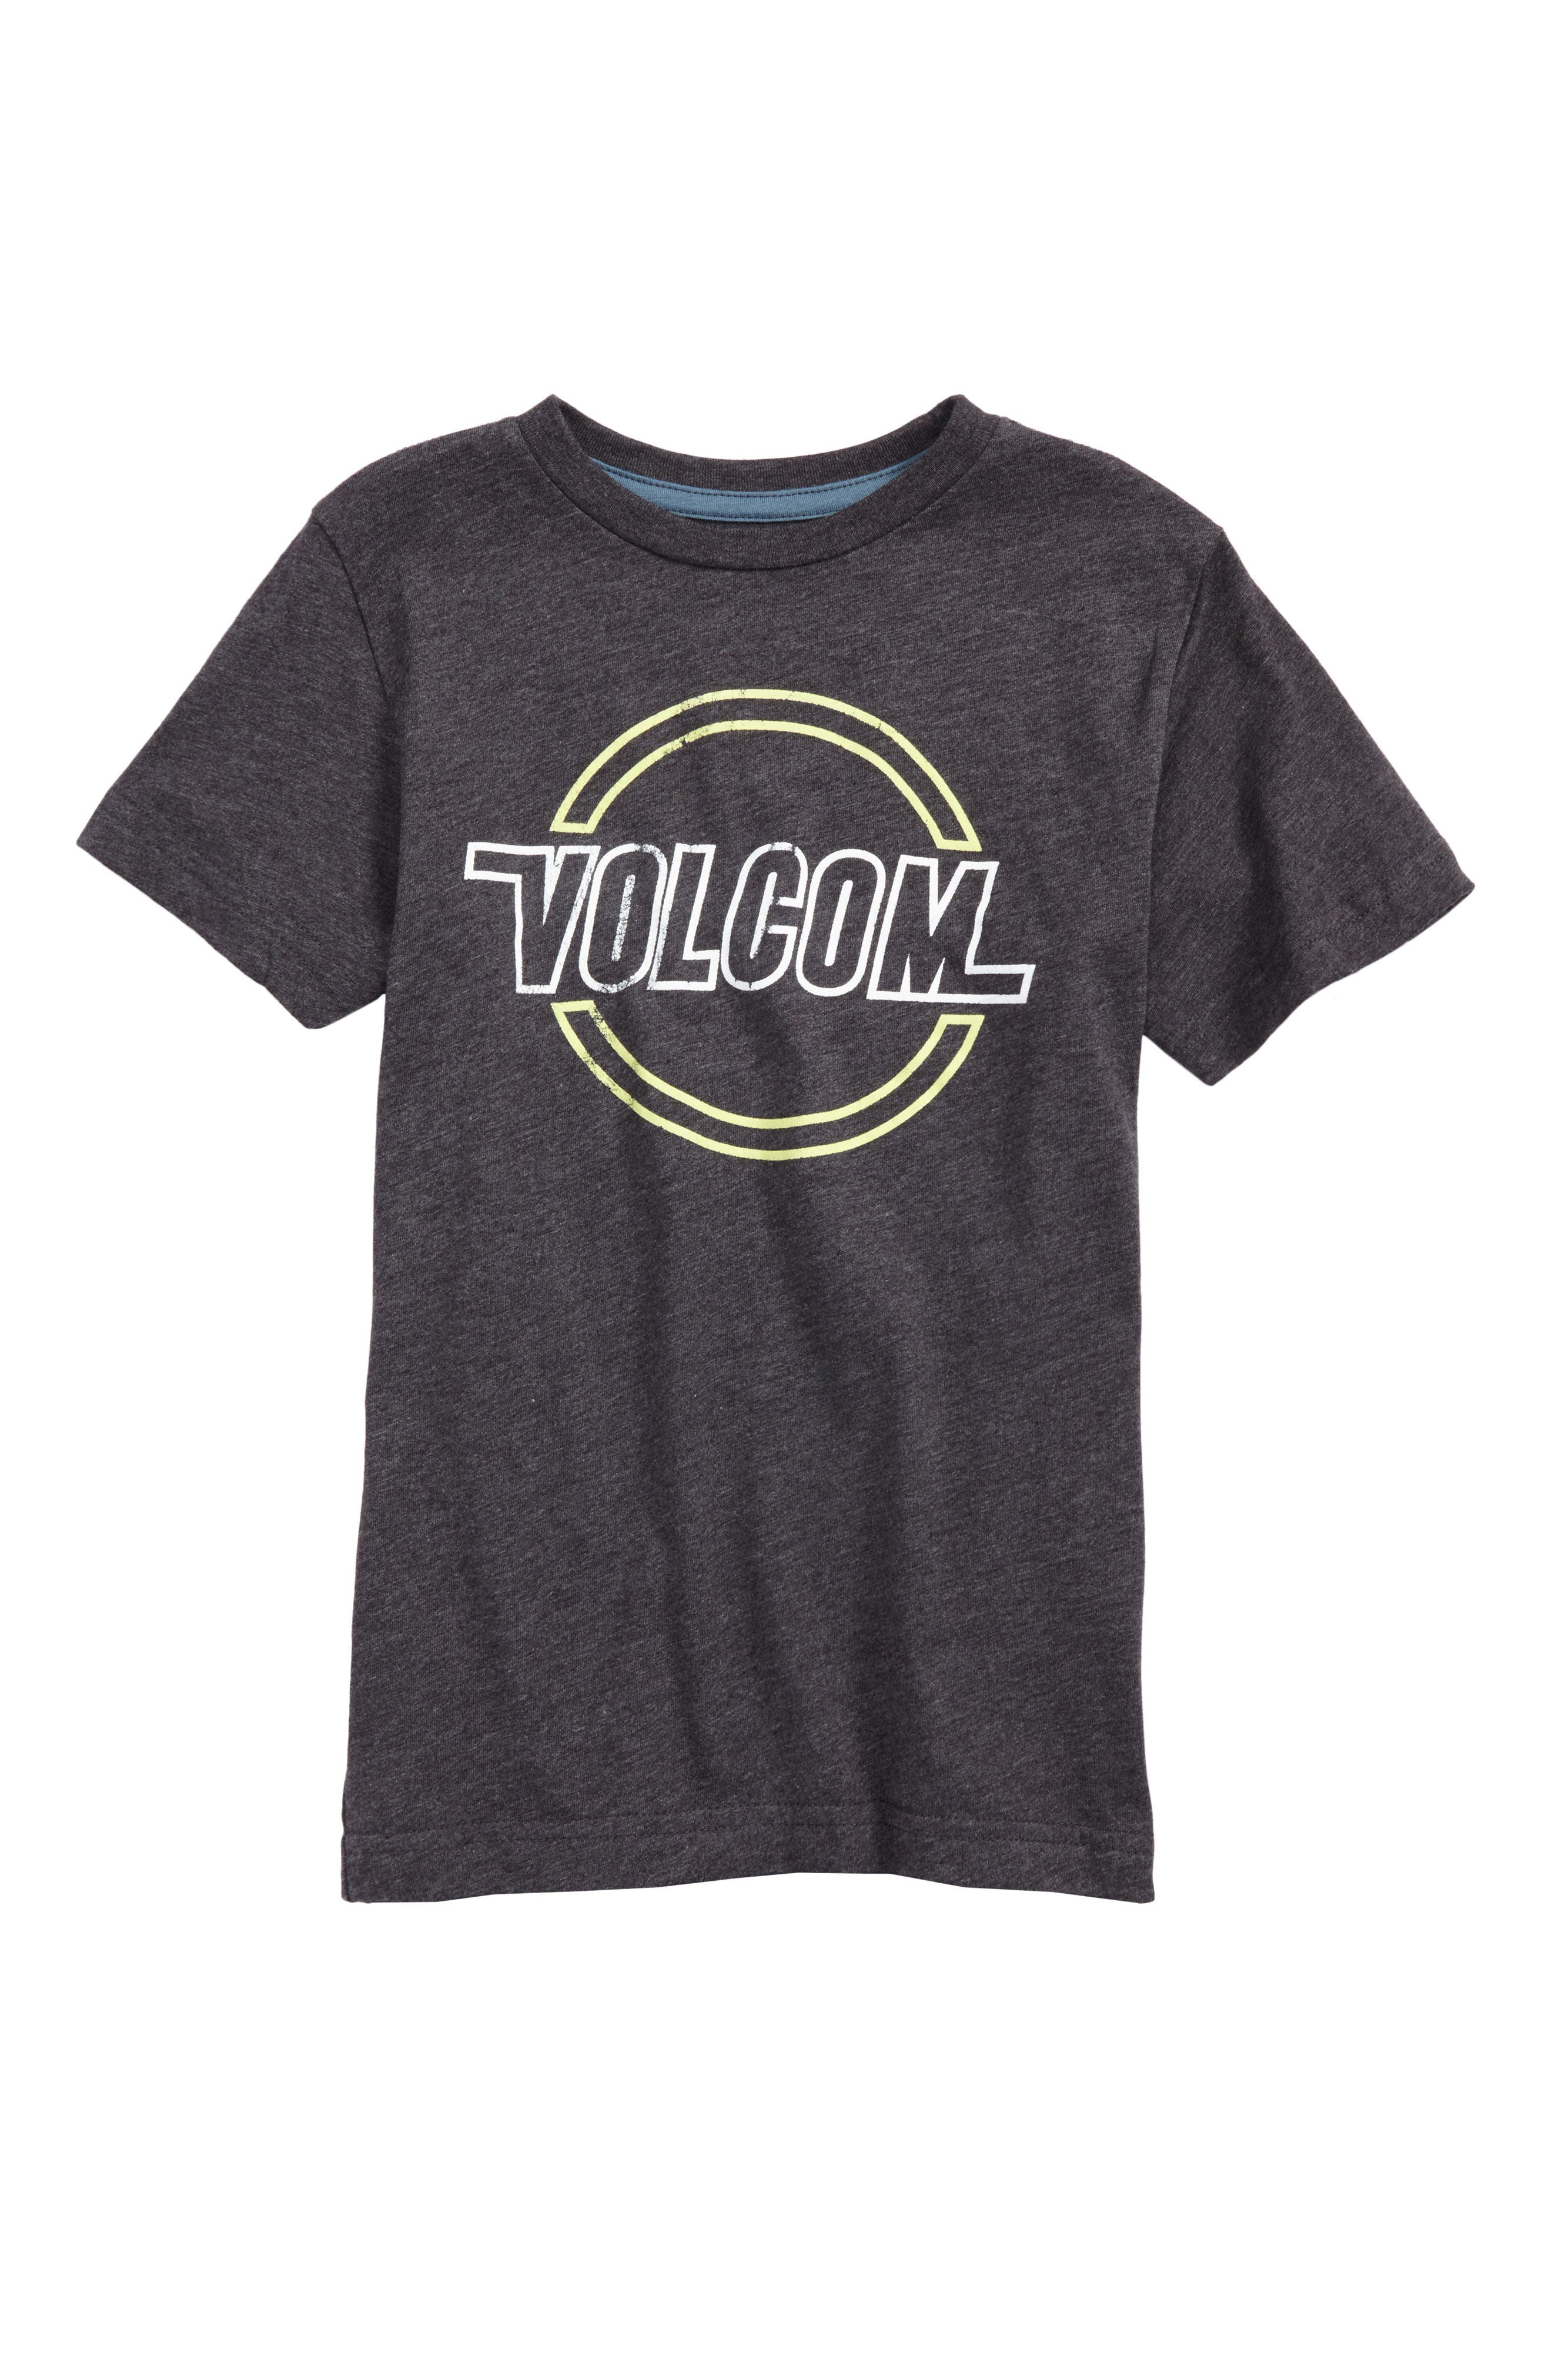 Alternate Image 1 Selected - Volcom Lo-Tech Logo Graphic T-Shirt (Toddler Boys & Little Boys)